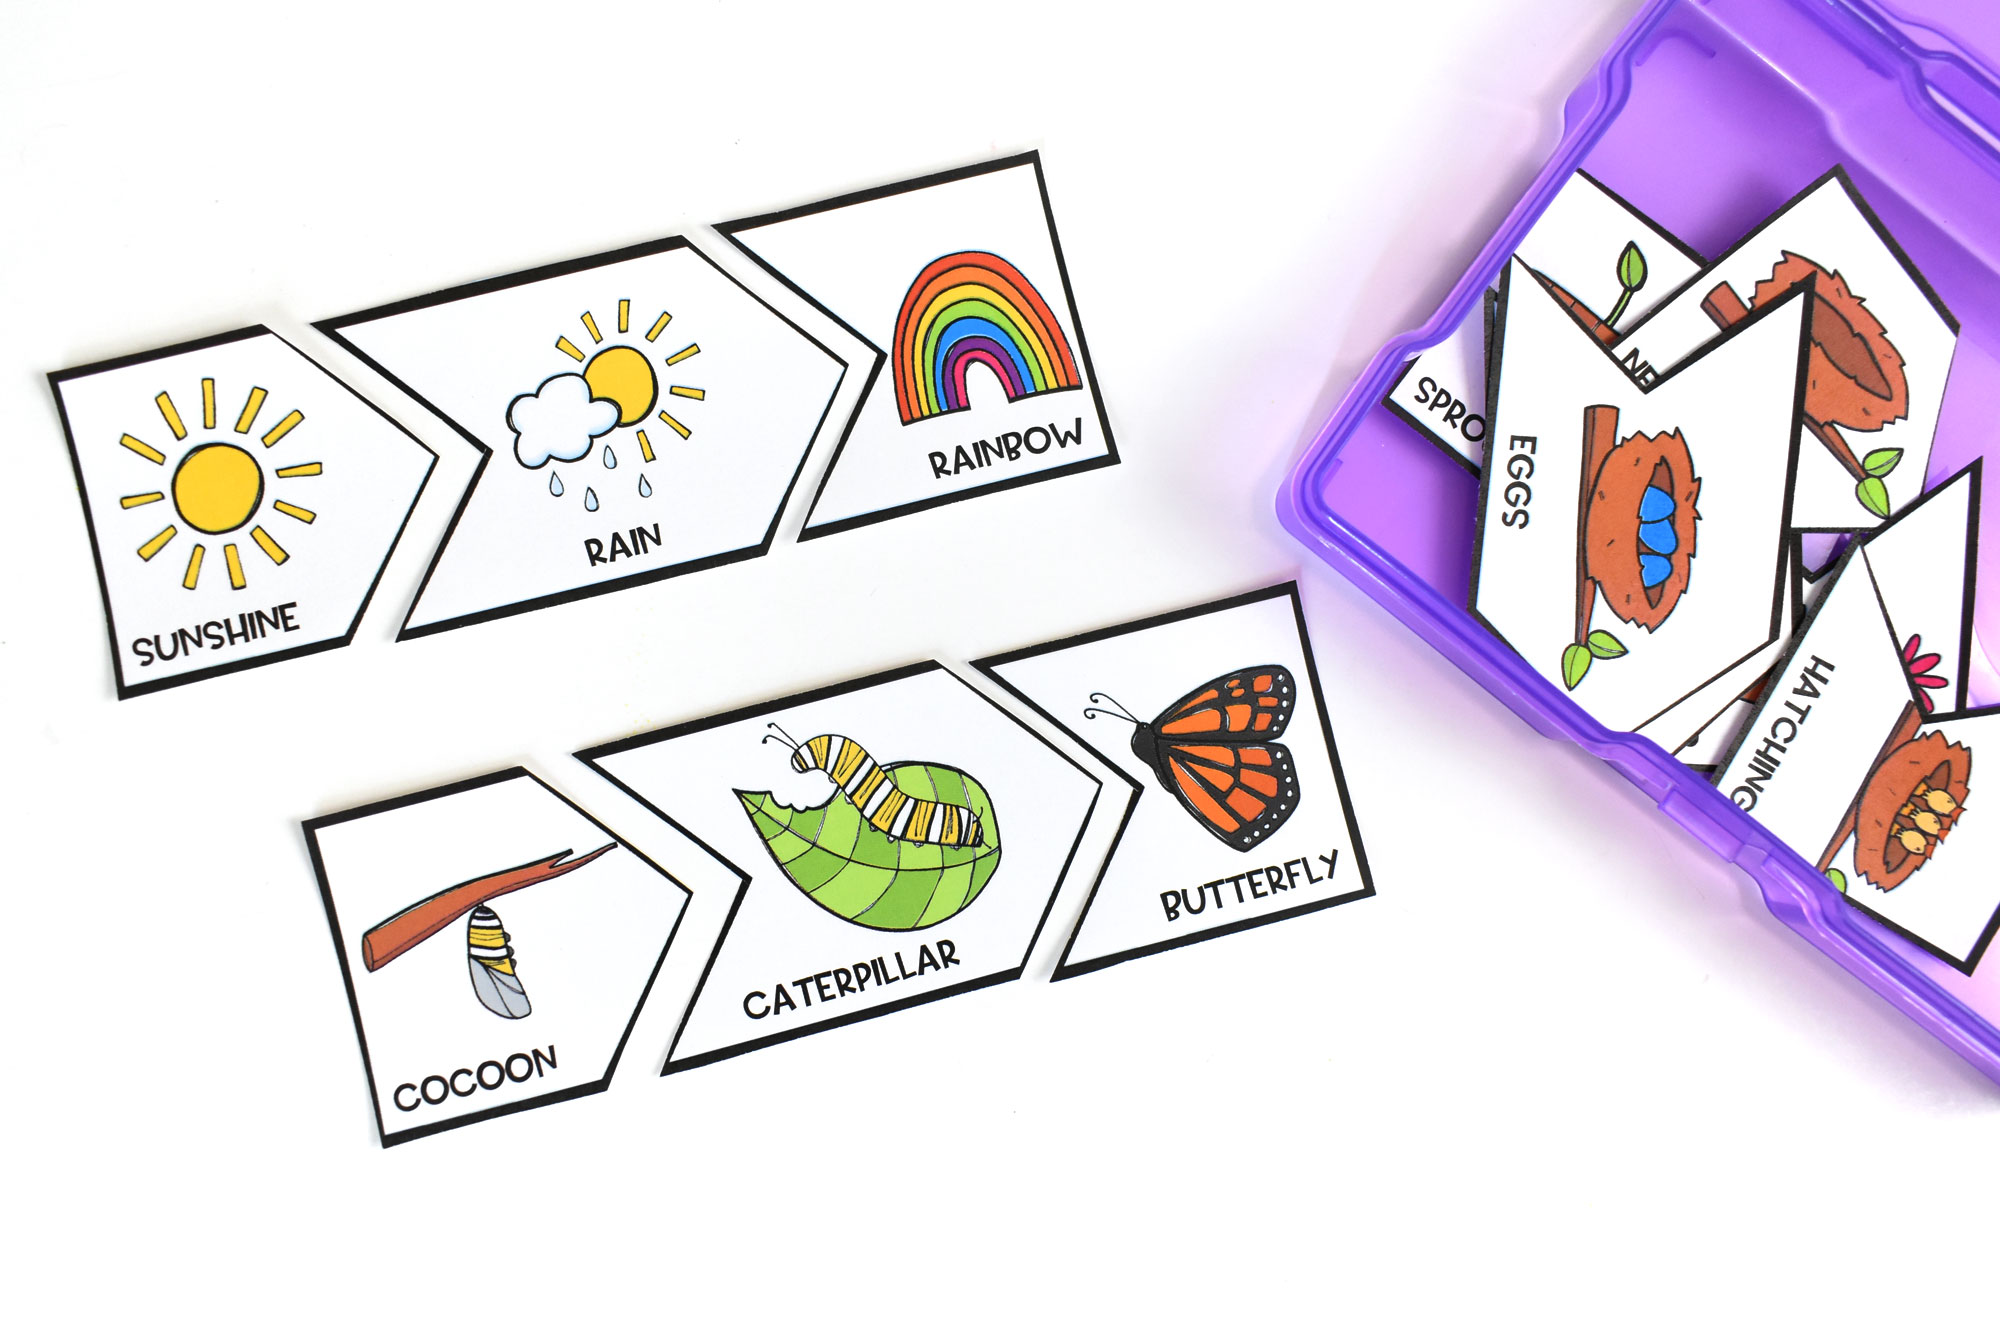 Spring Sequencing Card Puzzles | HolidayPrinables.net #printables #spring #sequencingcards #printablepuzzles #printablesforkids #educationprintables #homeschoolprintables #weloveprintables #holidayprintables